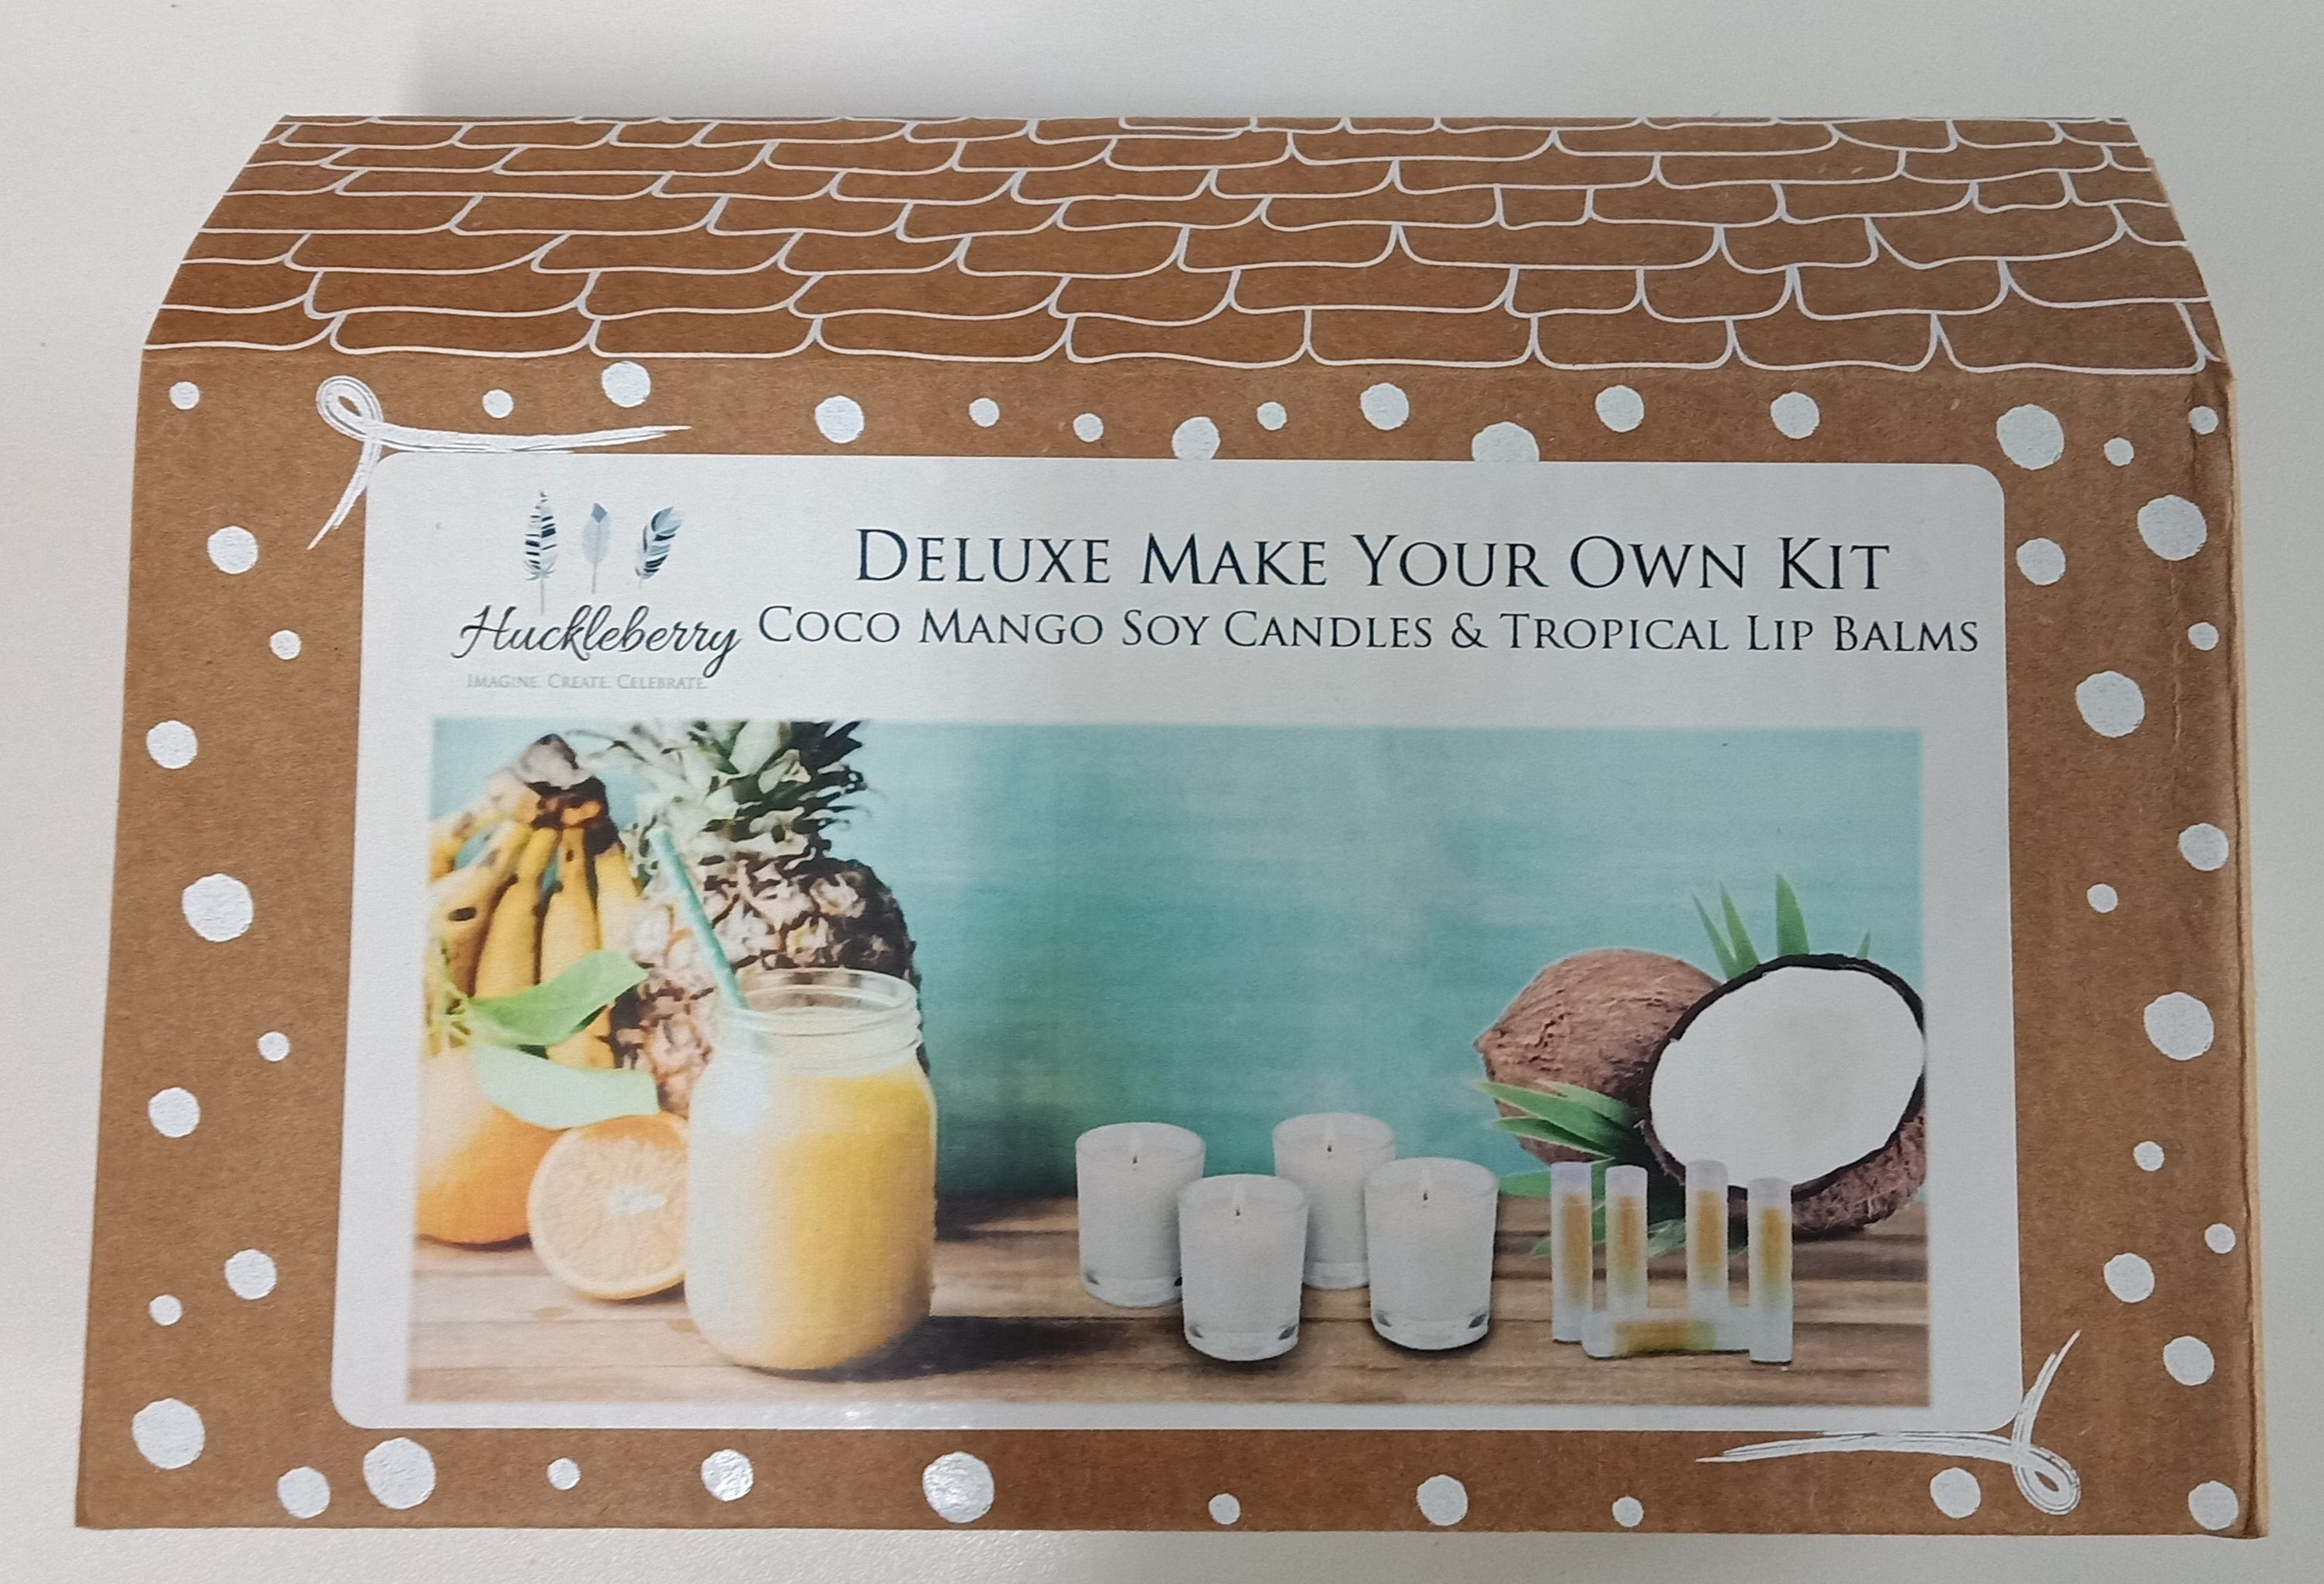 Huckleberry Deluxe: Coco Mango Soy Candles and Tropical Lip Balms